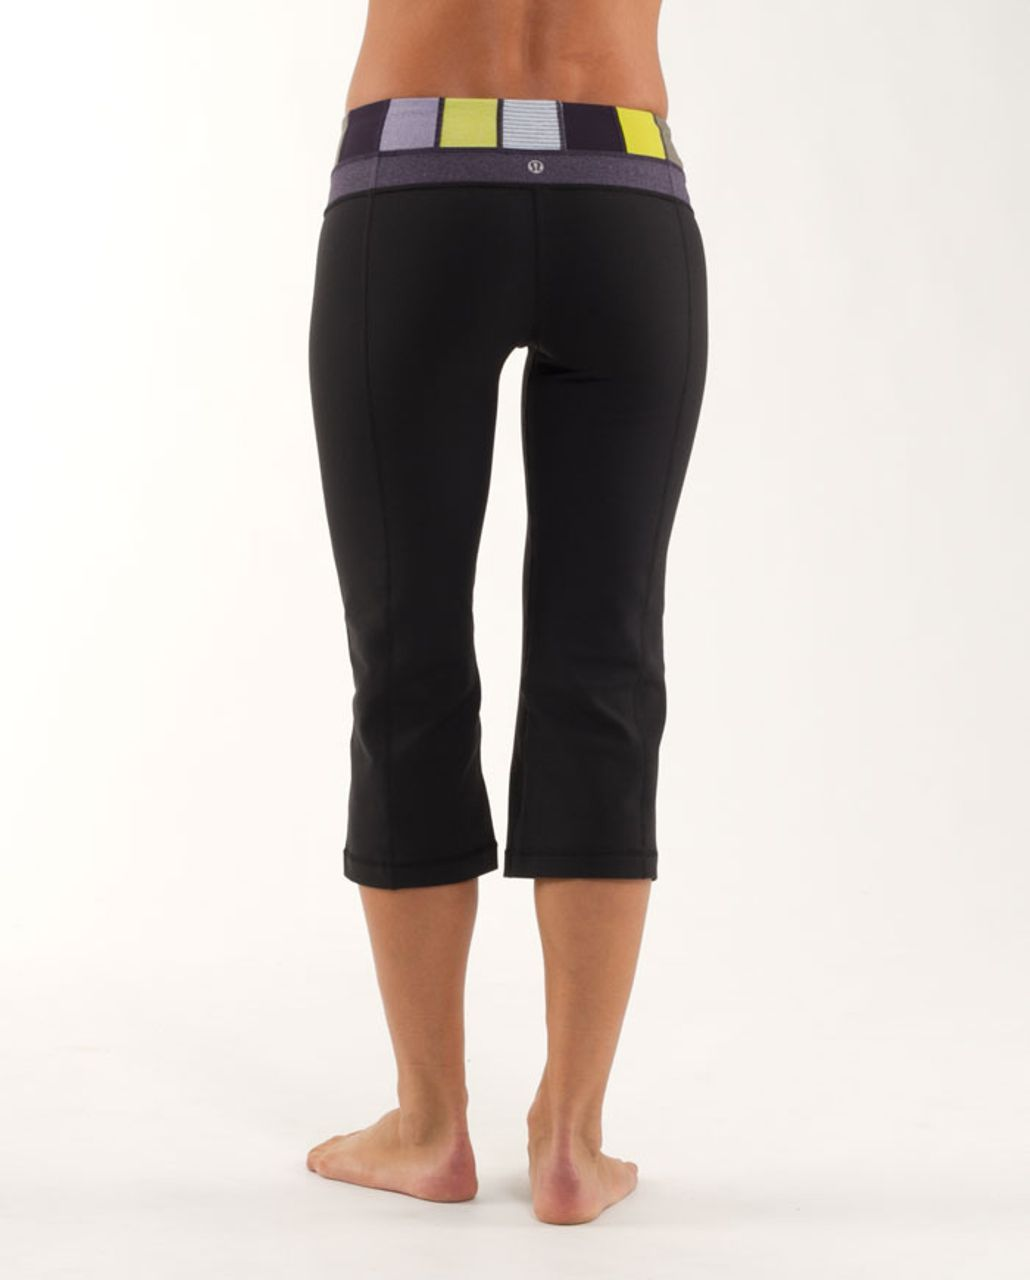 Lululemon Groove Crop - Black /  Quilting Winter 1 /  Black Swan Heathered Black Herringbone